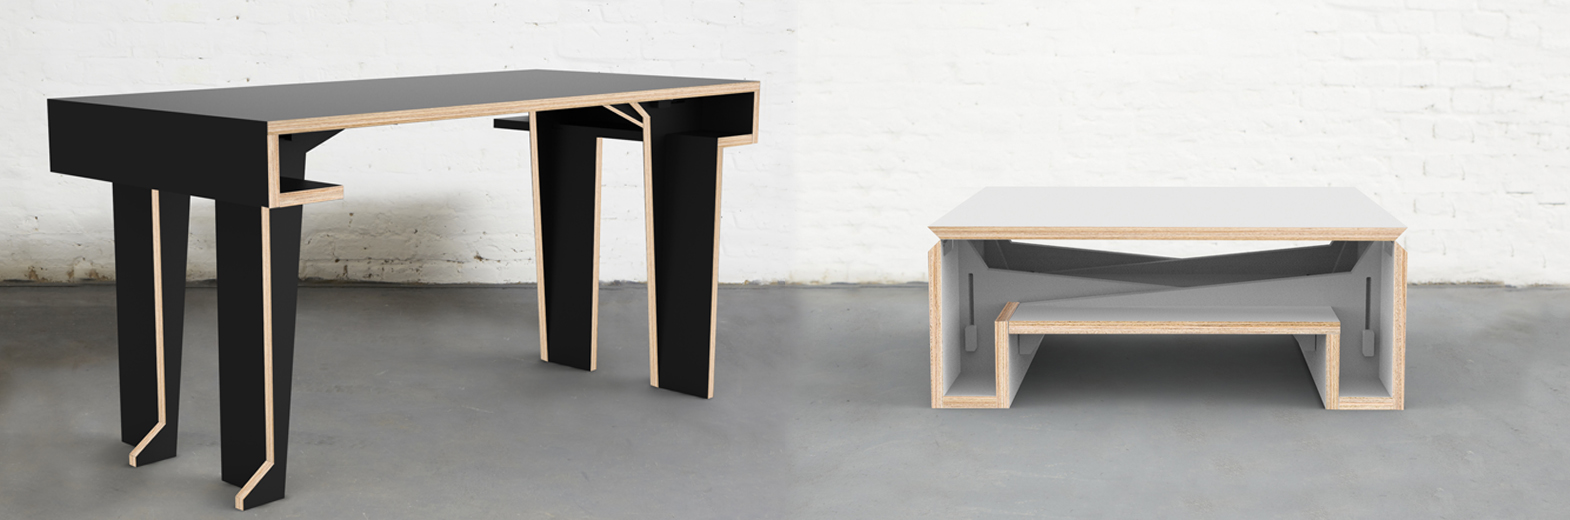 PRODUCT DETAILS - MK2 Transforming Coffee Table - Duffy London